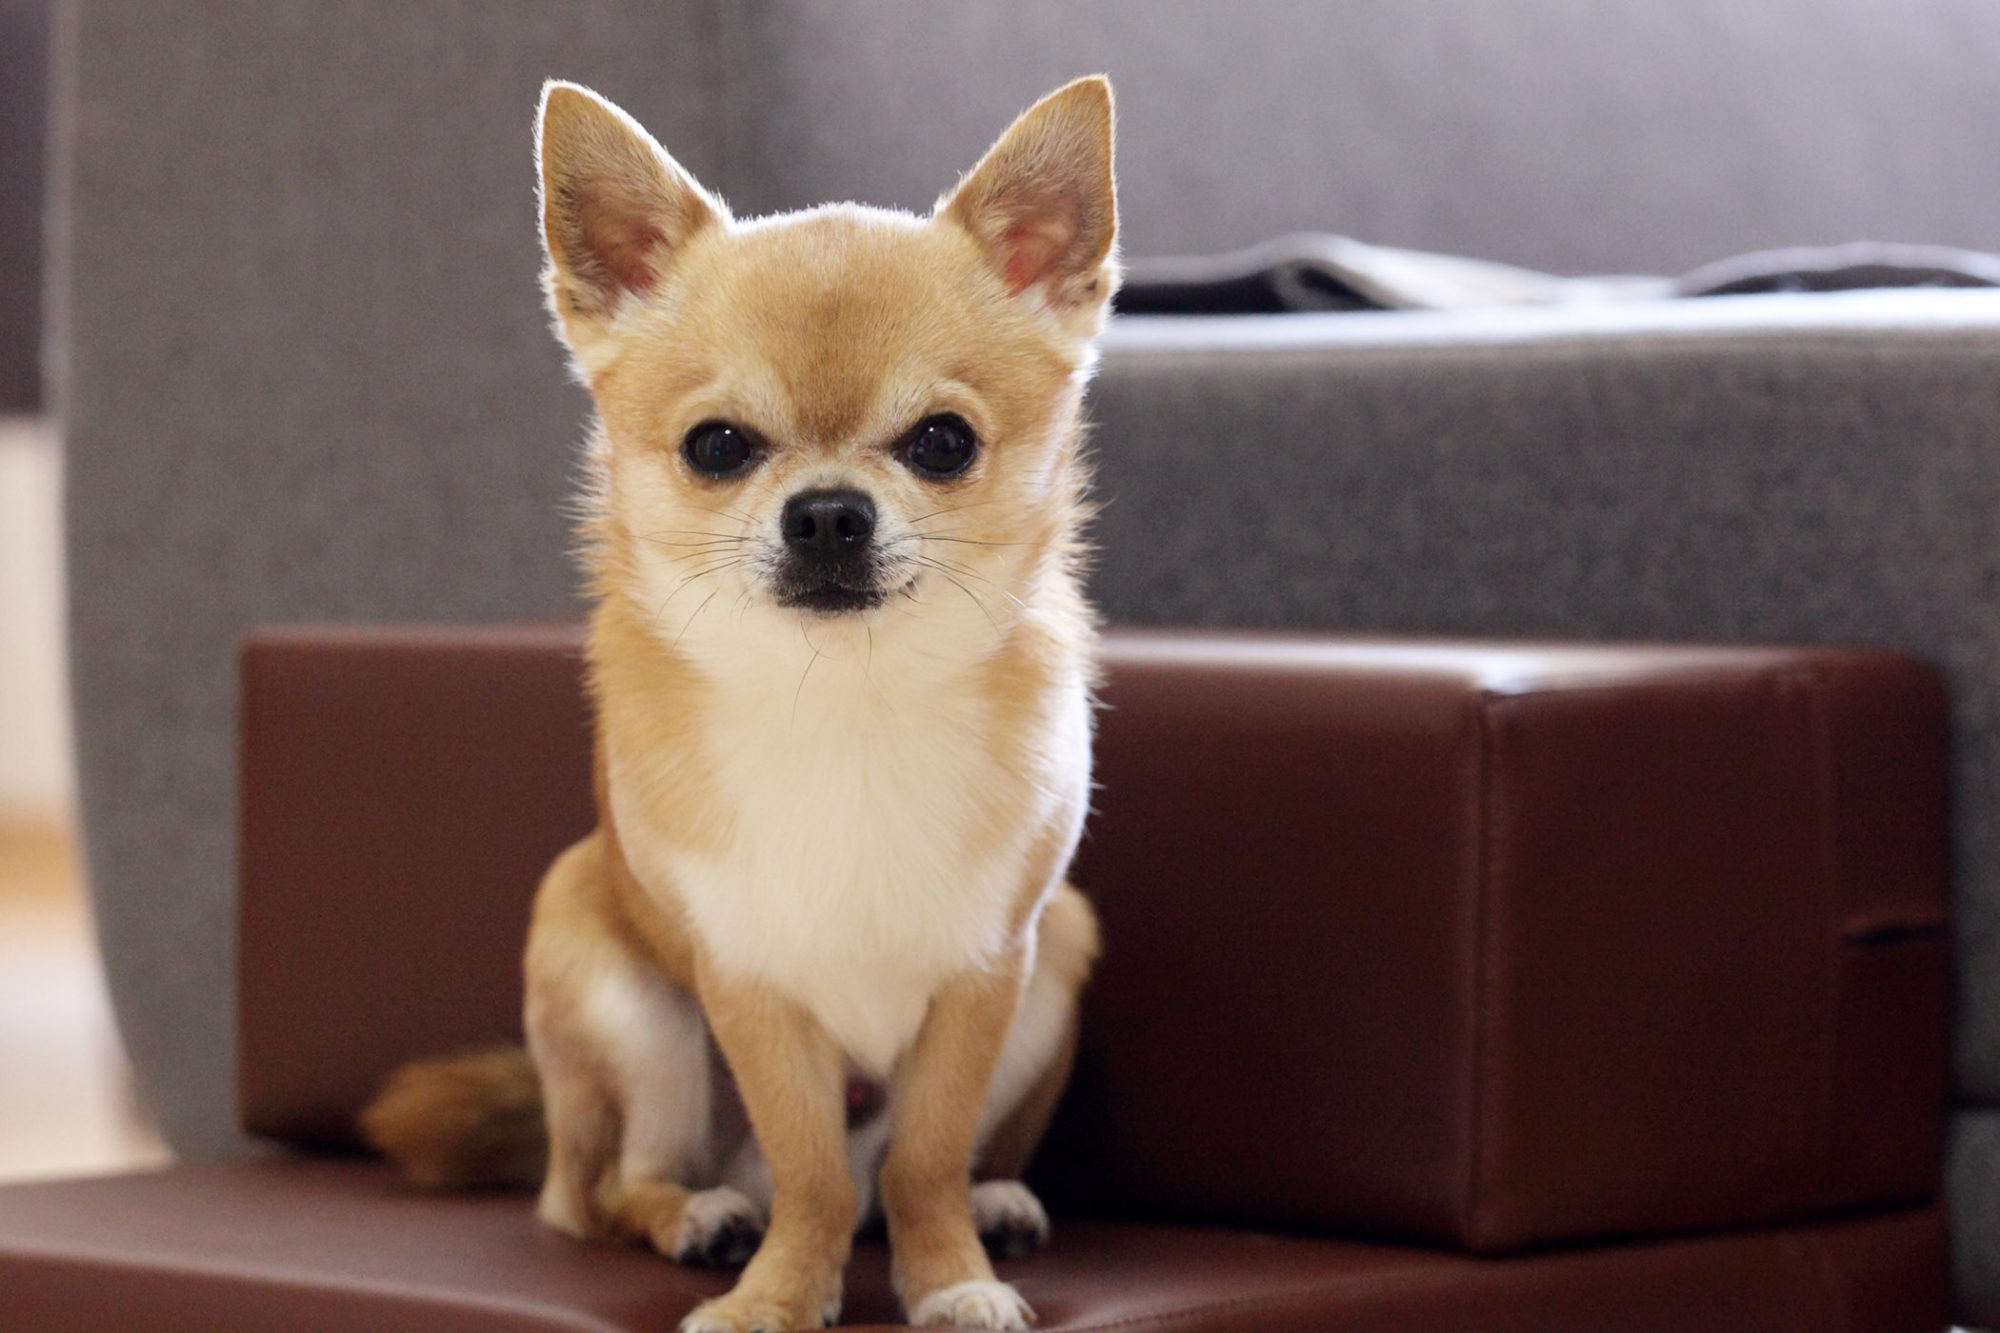 tan-and-white Chihuahua sitting on stairs near sofa